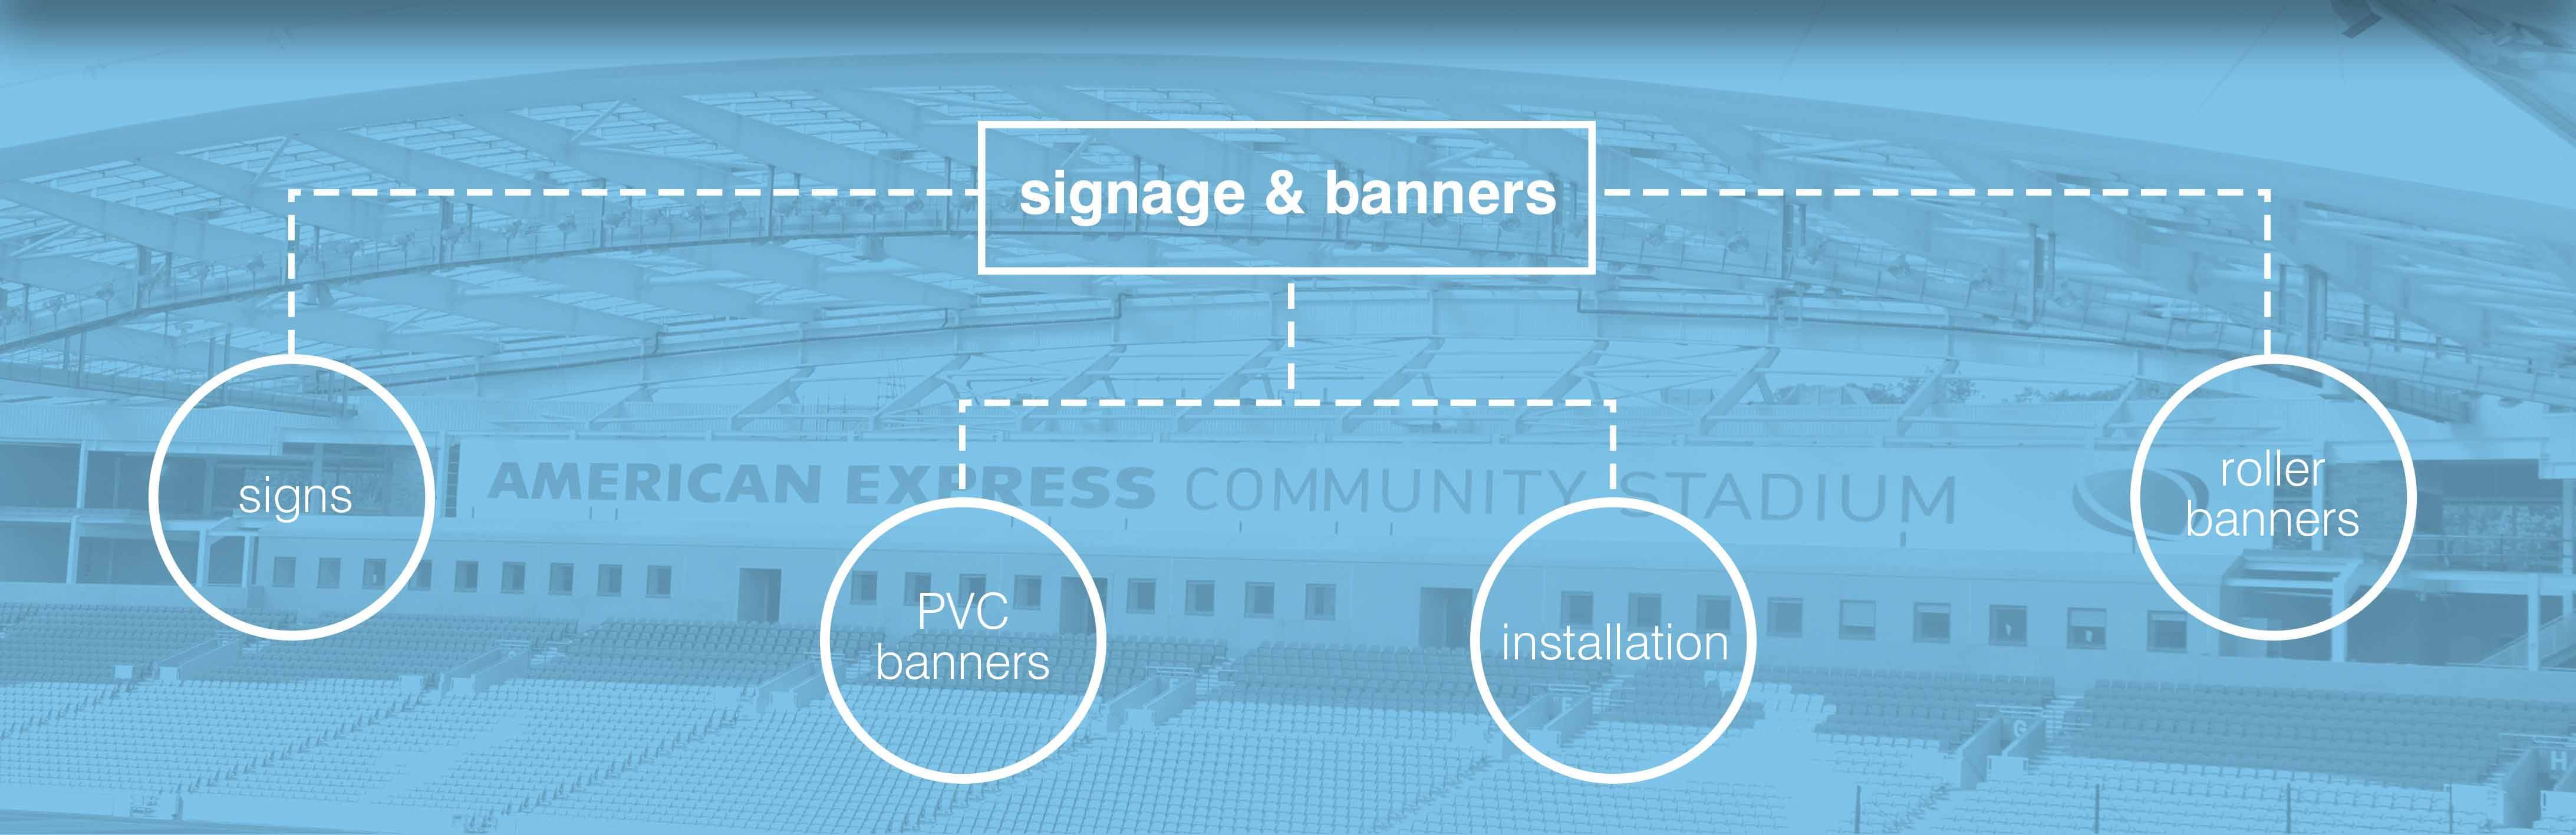 am-pm signage & banners